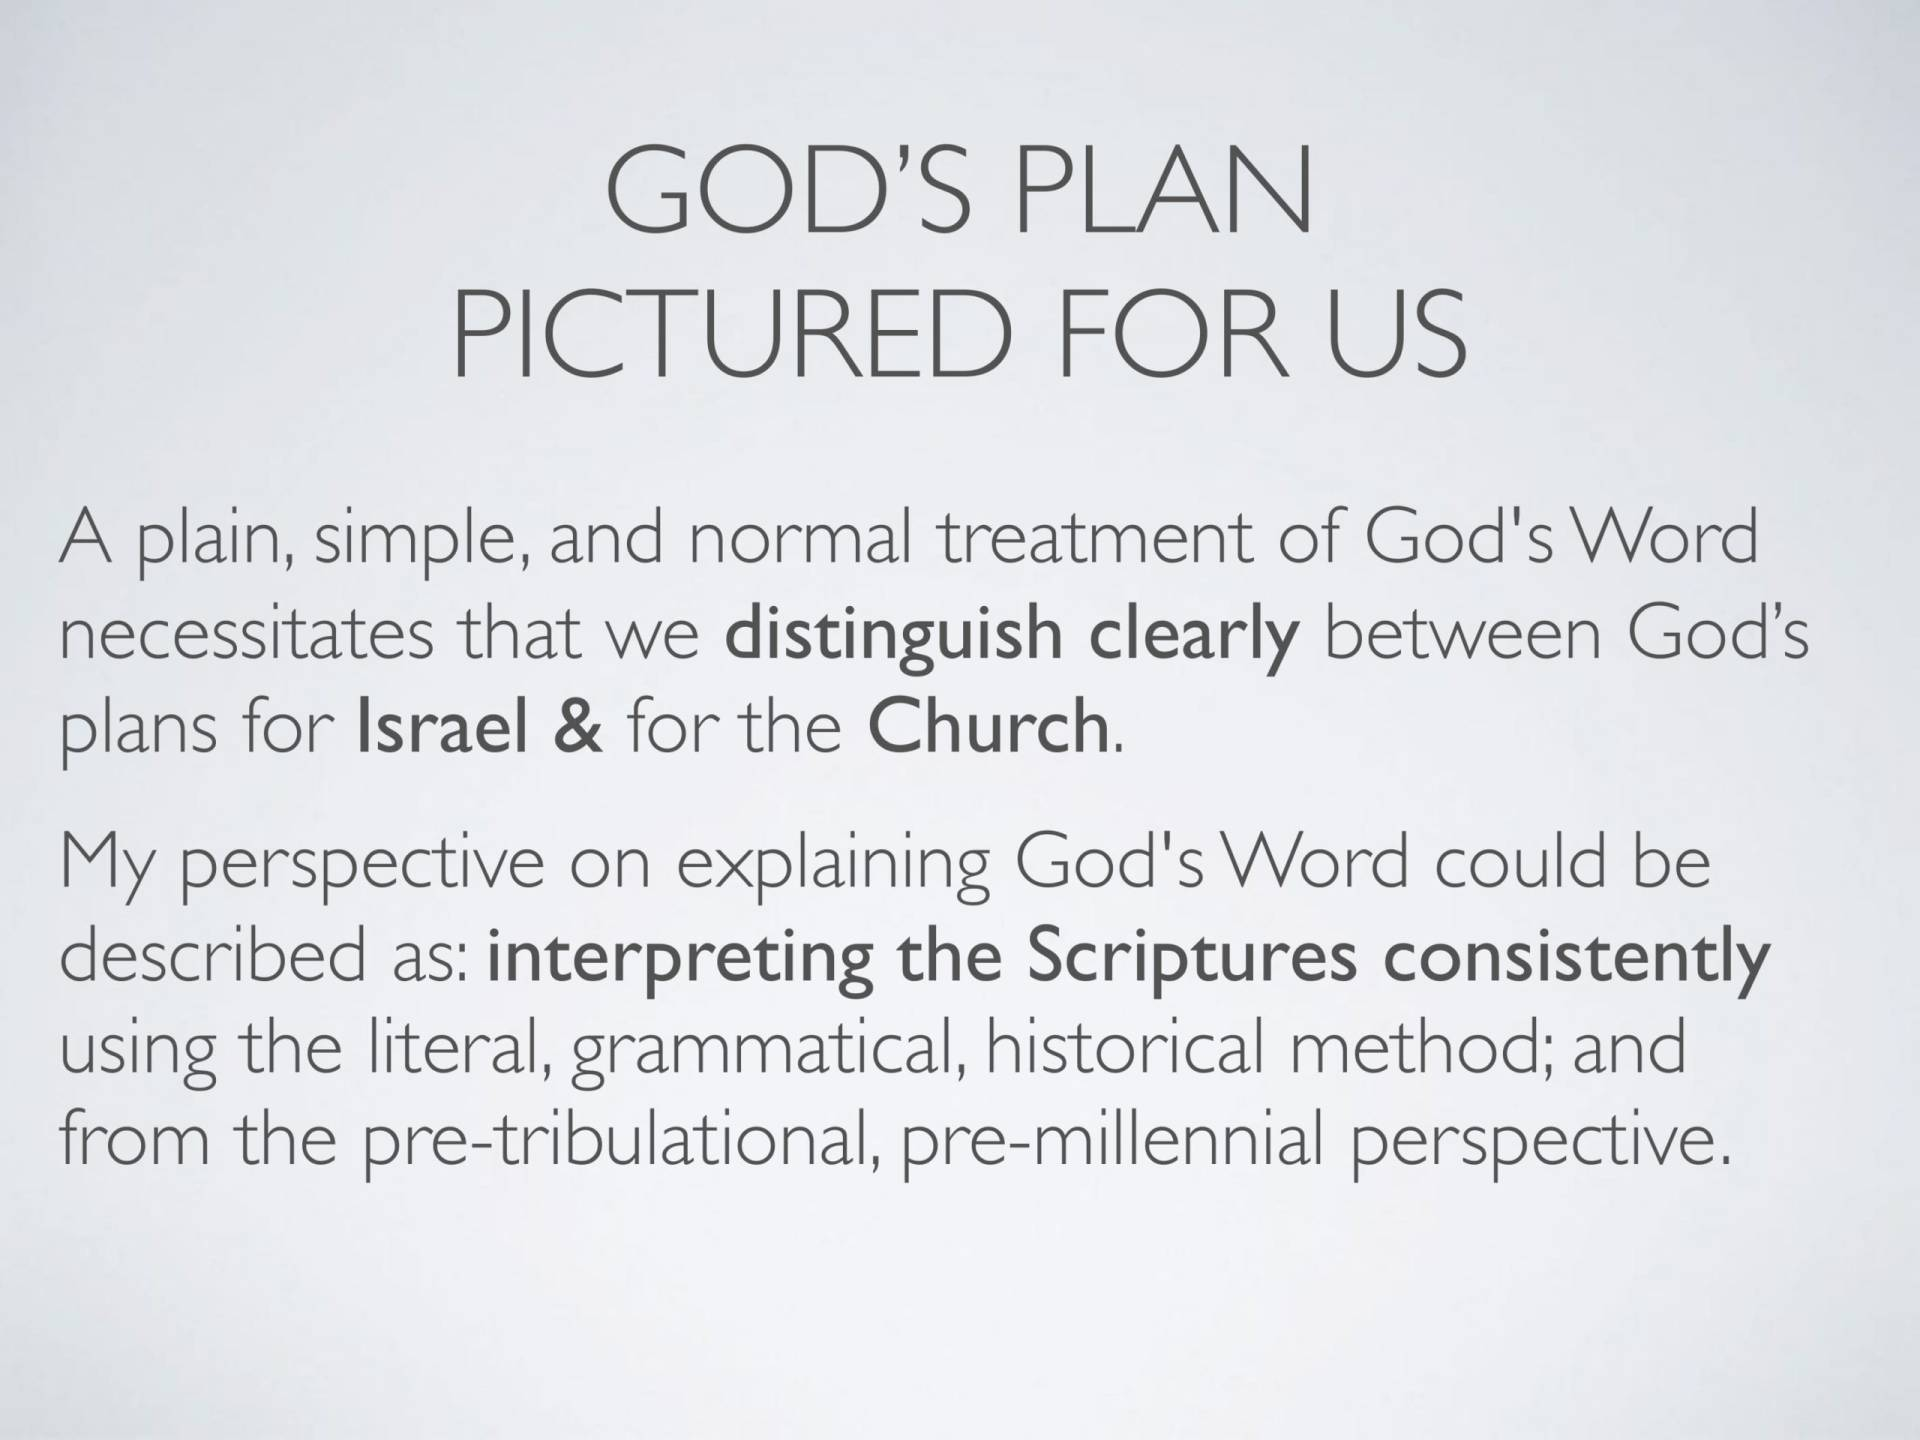 WOL2018 Hungary - 02 - Christ's Last Words To His Church - God's Planned Picture For Us (17)